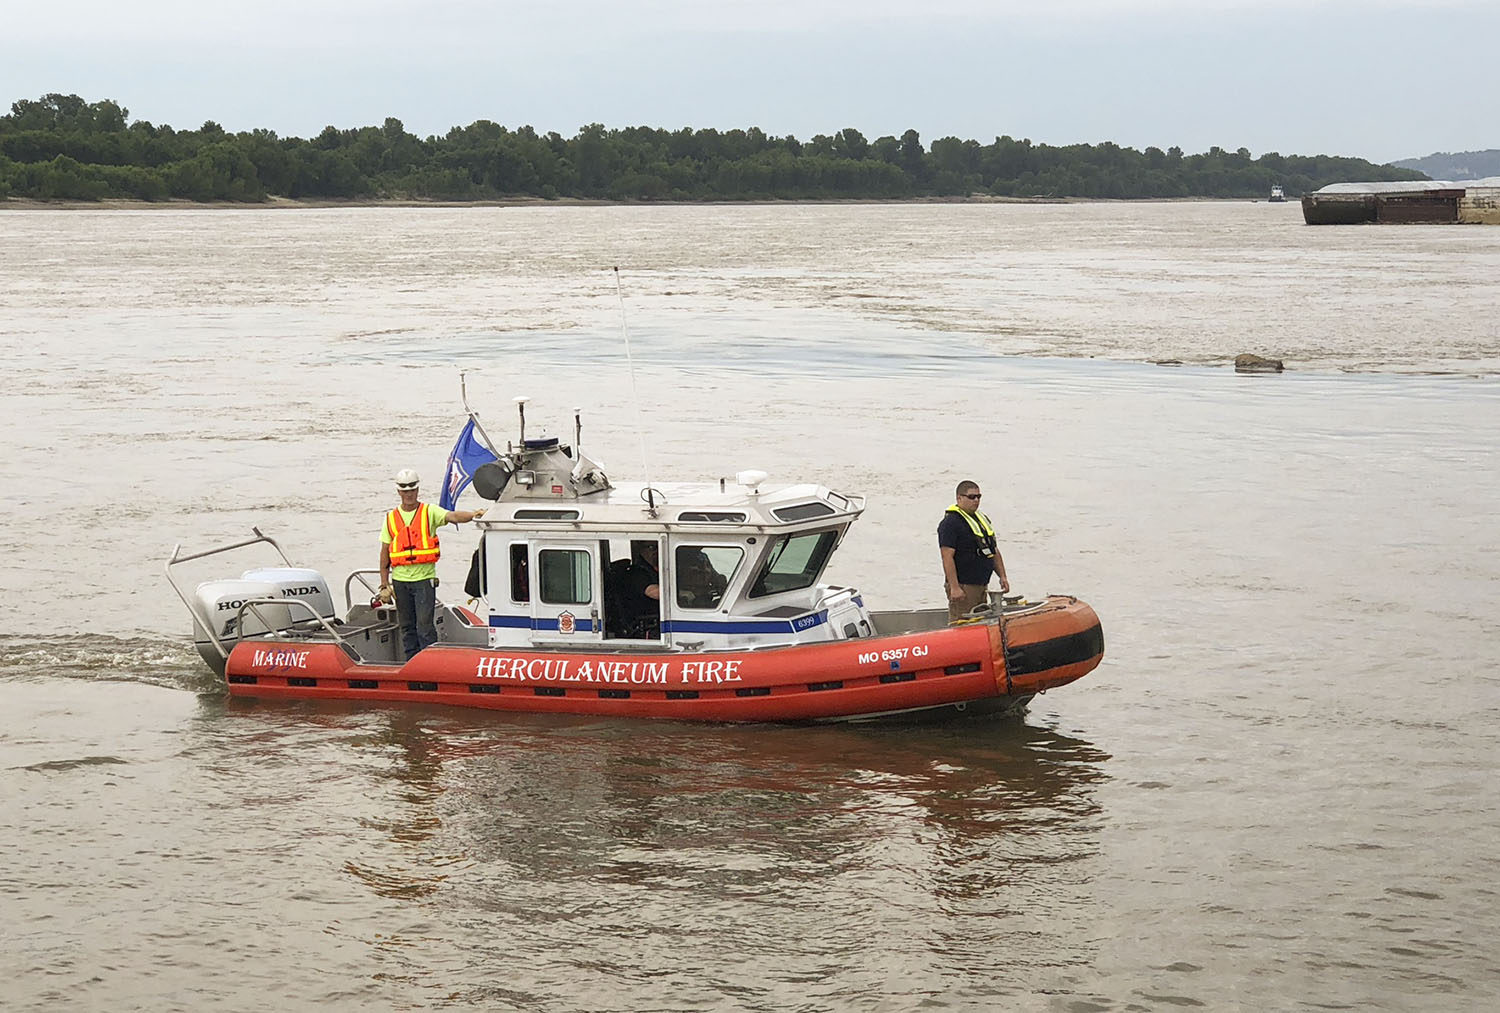 Two Mississippi River Ports In Missouri Get Fire, Safety Boats